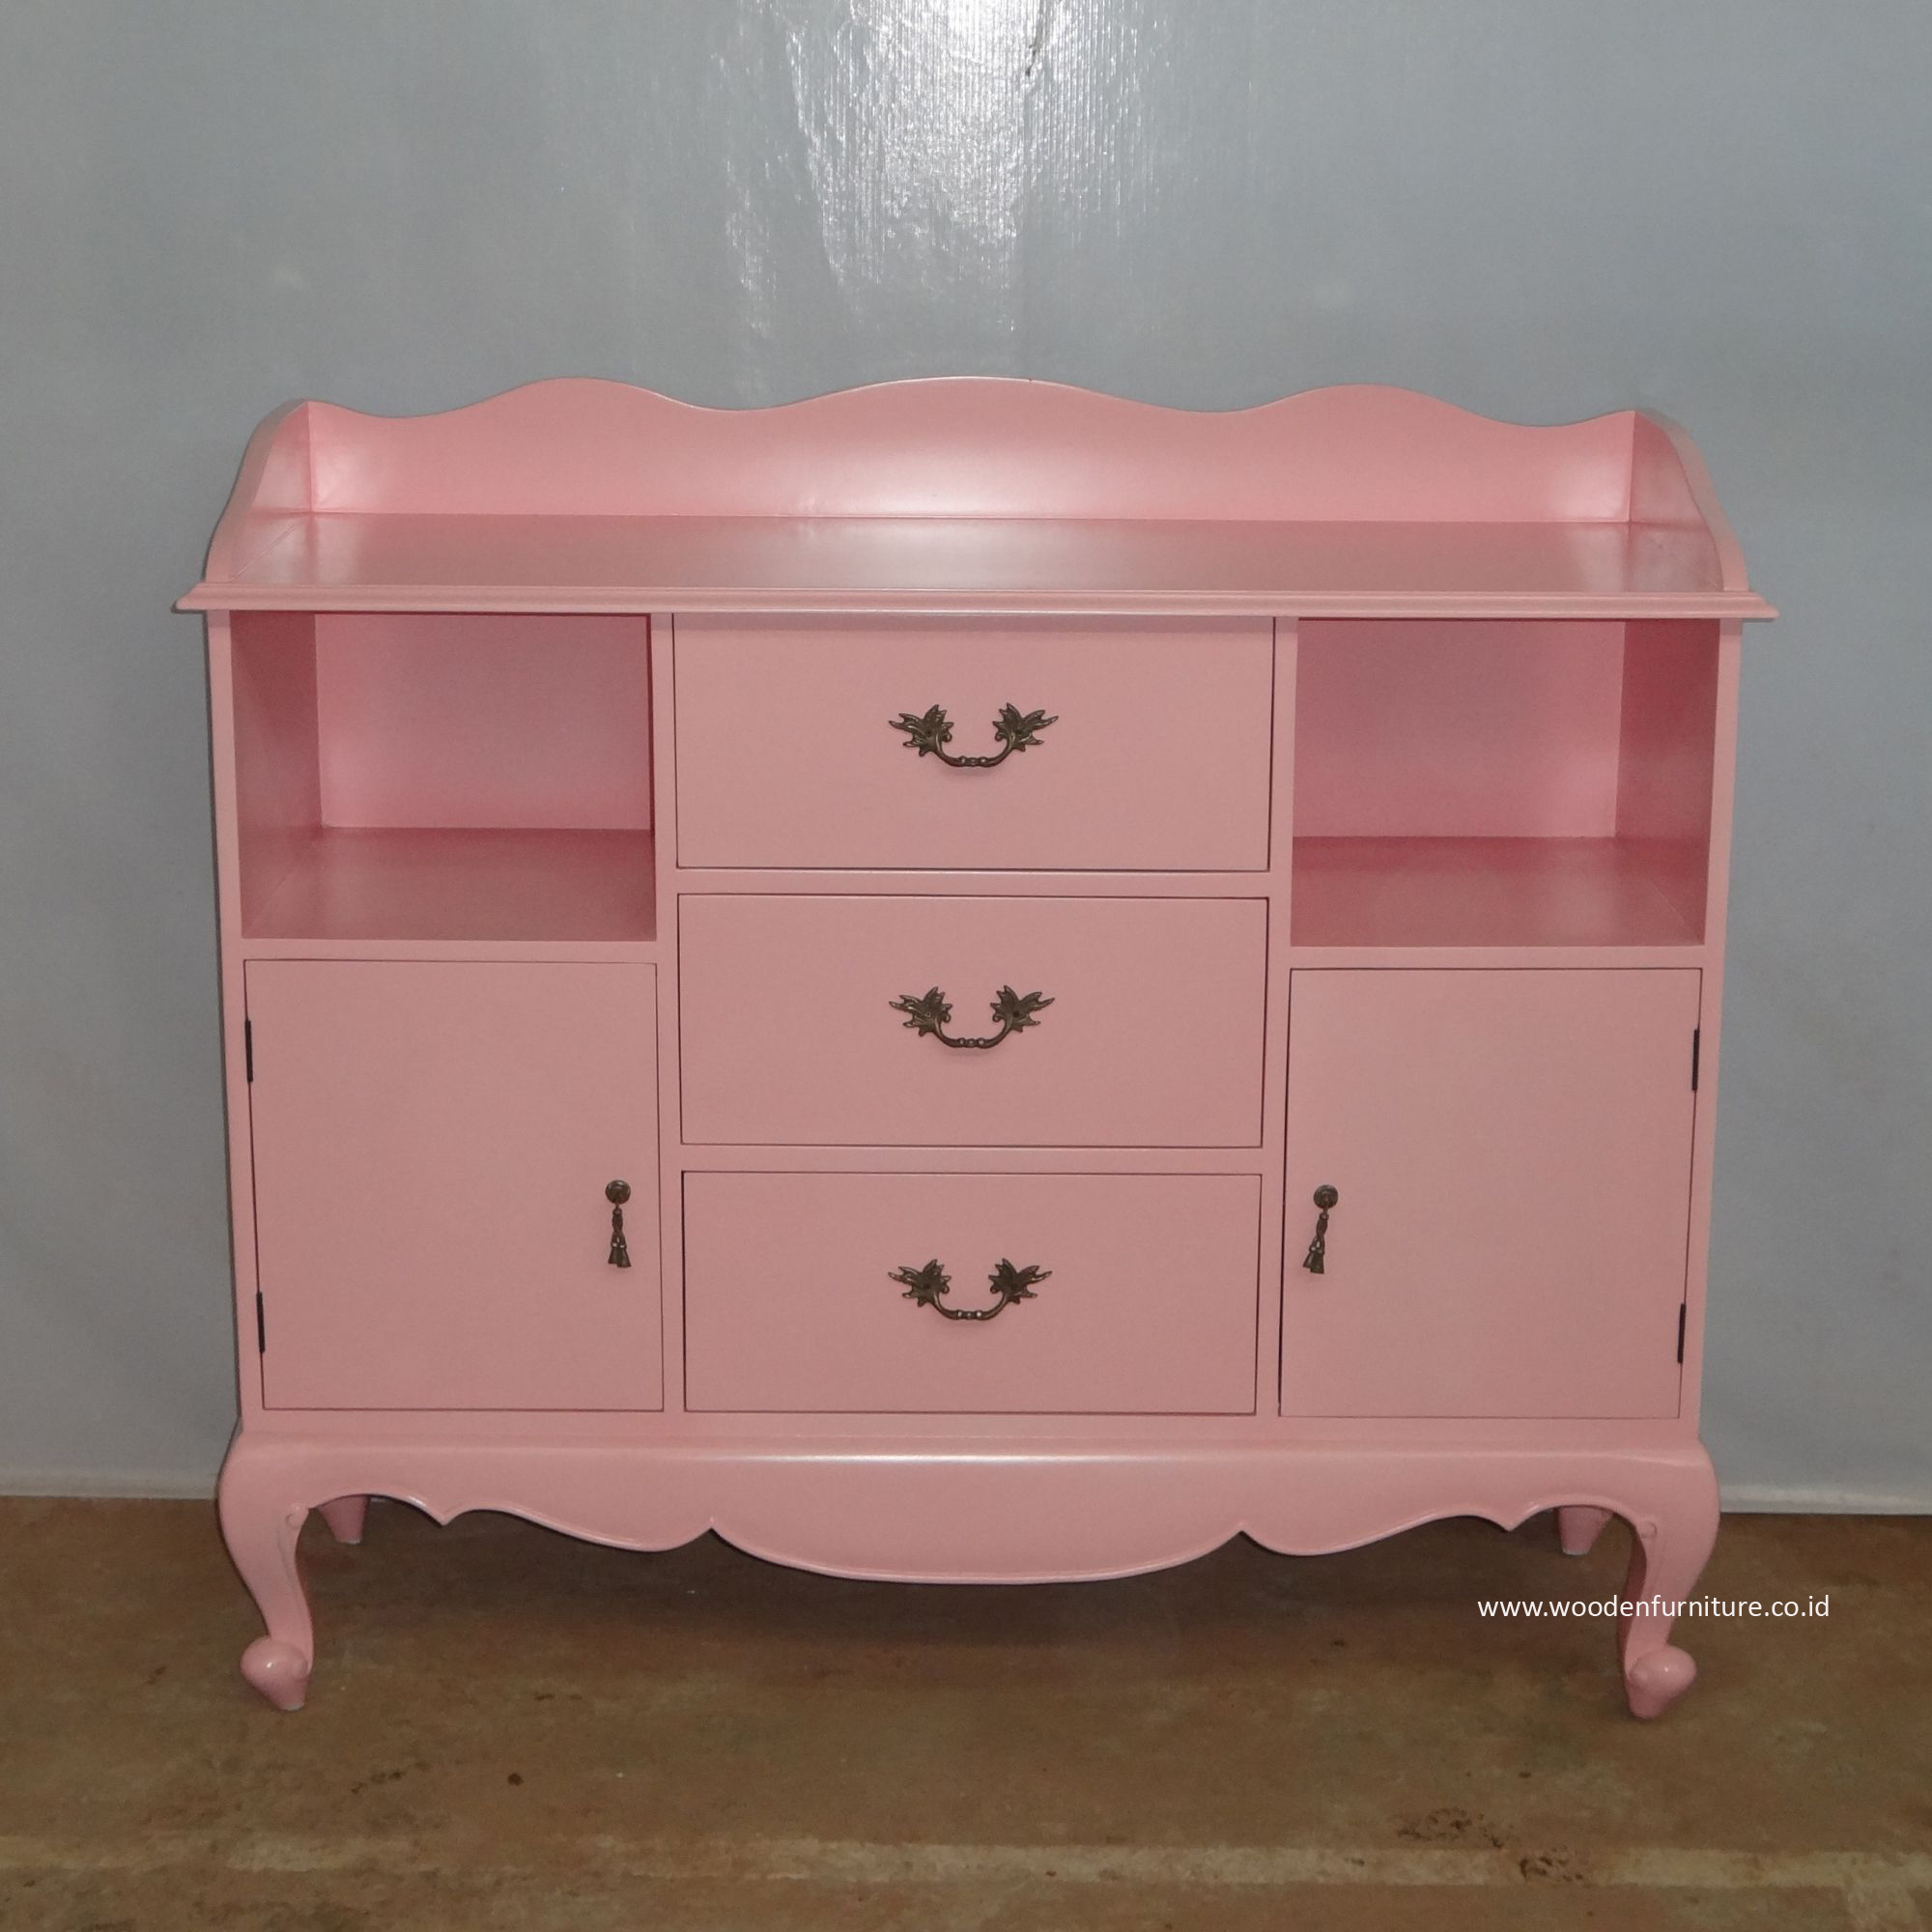 Kinder Möbel Baby Cabinet Nursing Commode Kinder Möbel Im Französischen Stil Antik Pink Painted Cabinet - Buy Kinder Möbel,baby Möbel,pflege Schrank Product On Alibaba.com